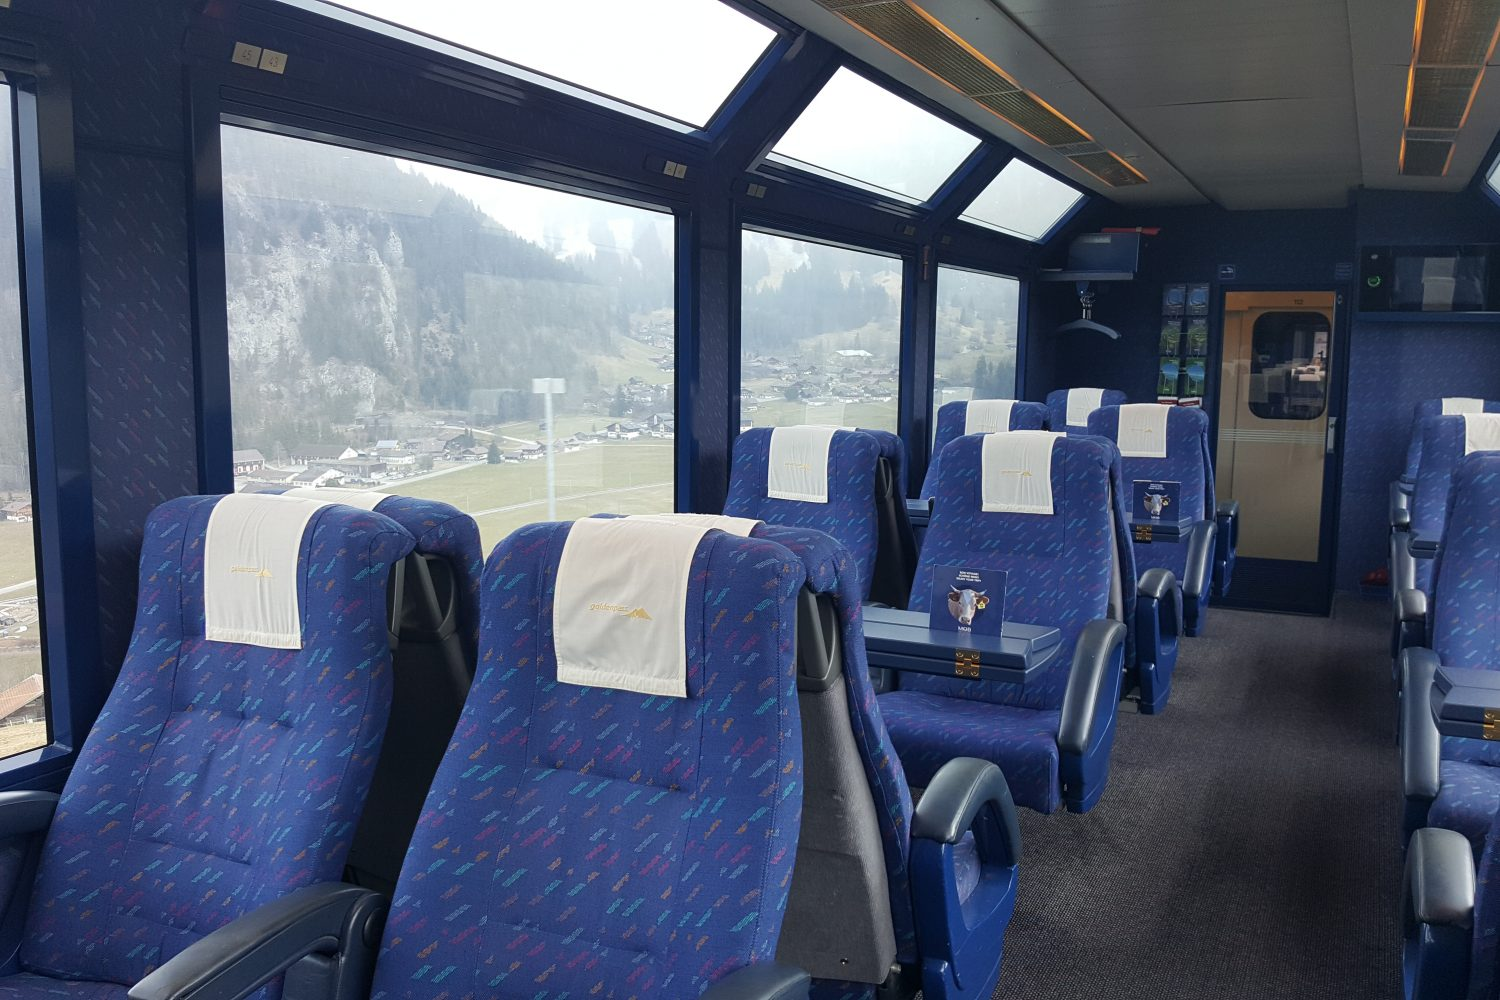 Treinreis Golden Pass Panoramic Express in 1e klas wagon van Montreux naar Zweisimmen.